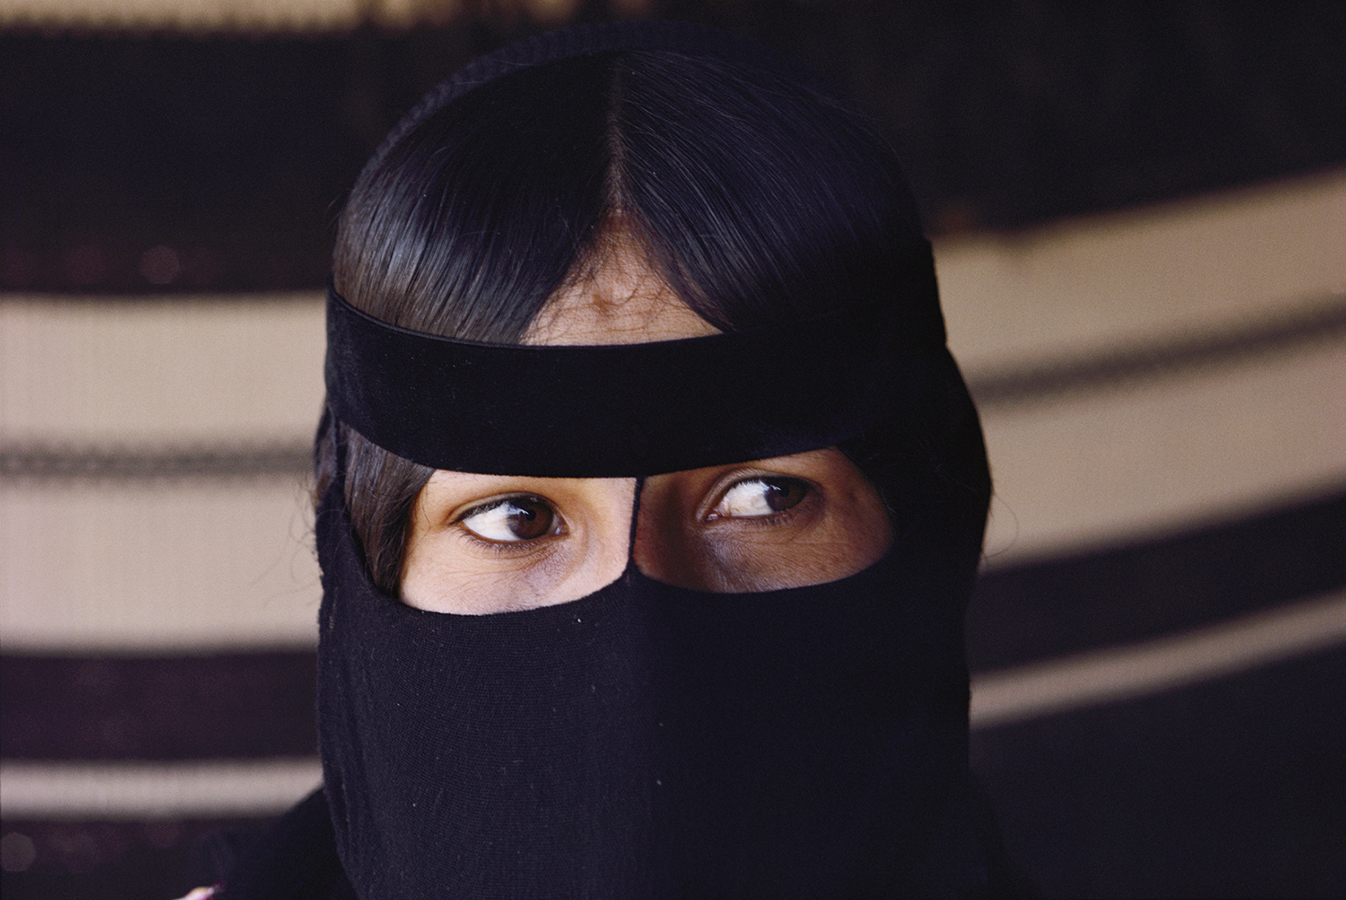 Saudi Woman | Photo by Jodi Cobb